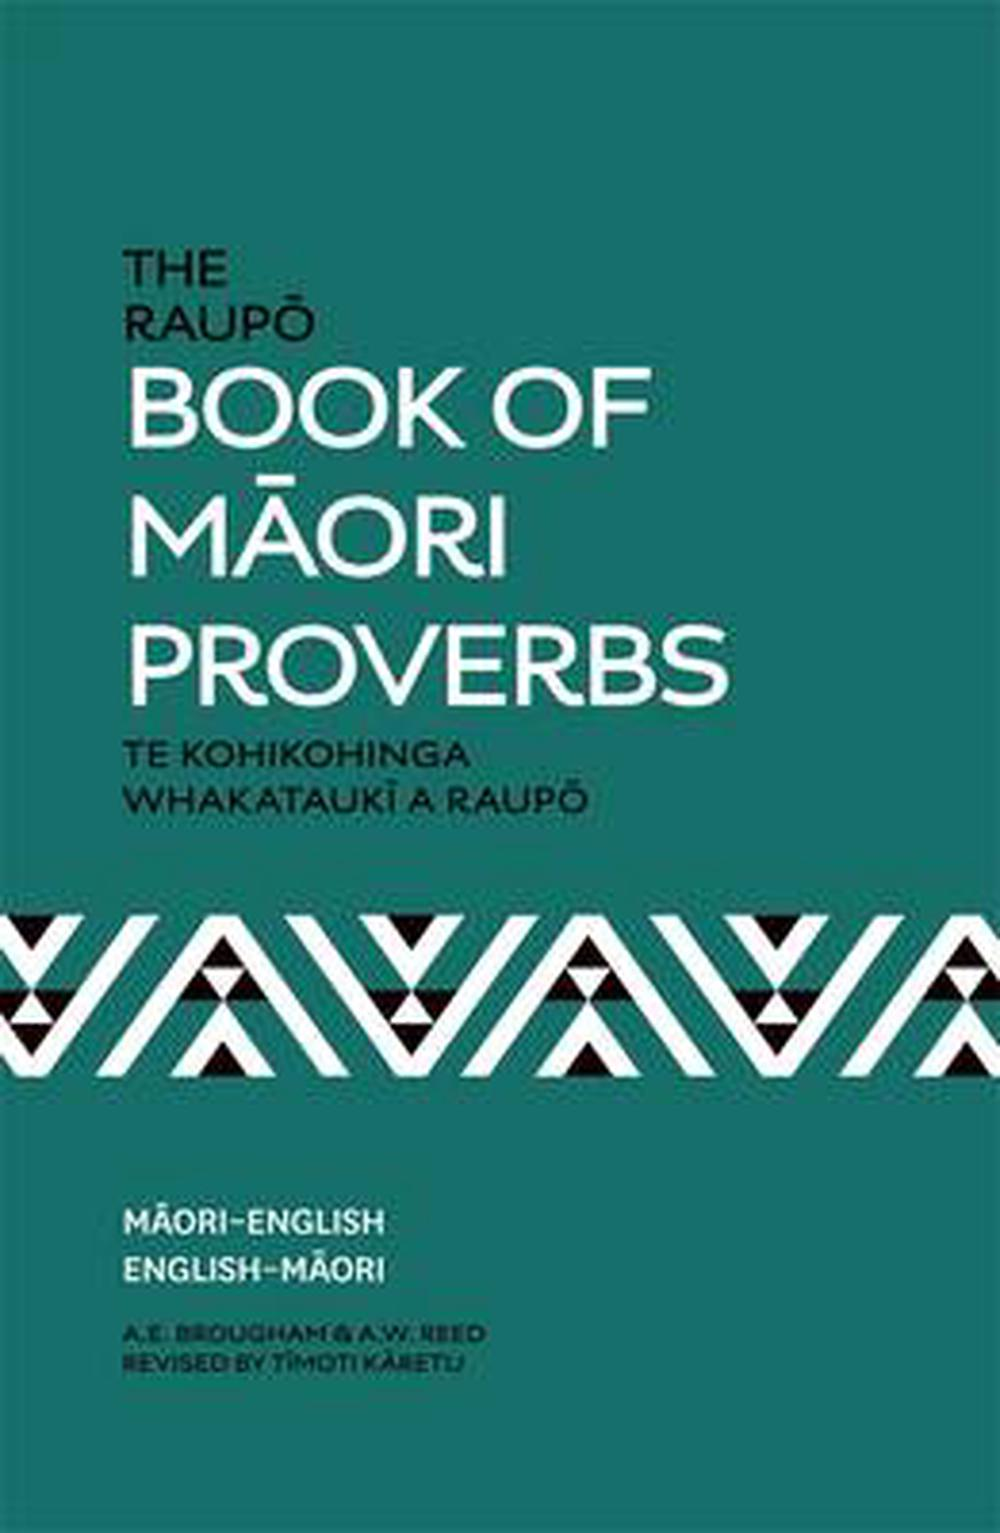 The Raupo Book of Maori Proverbs